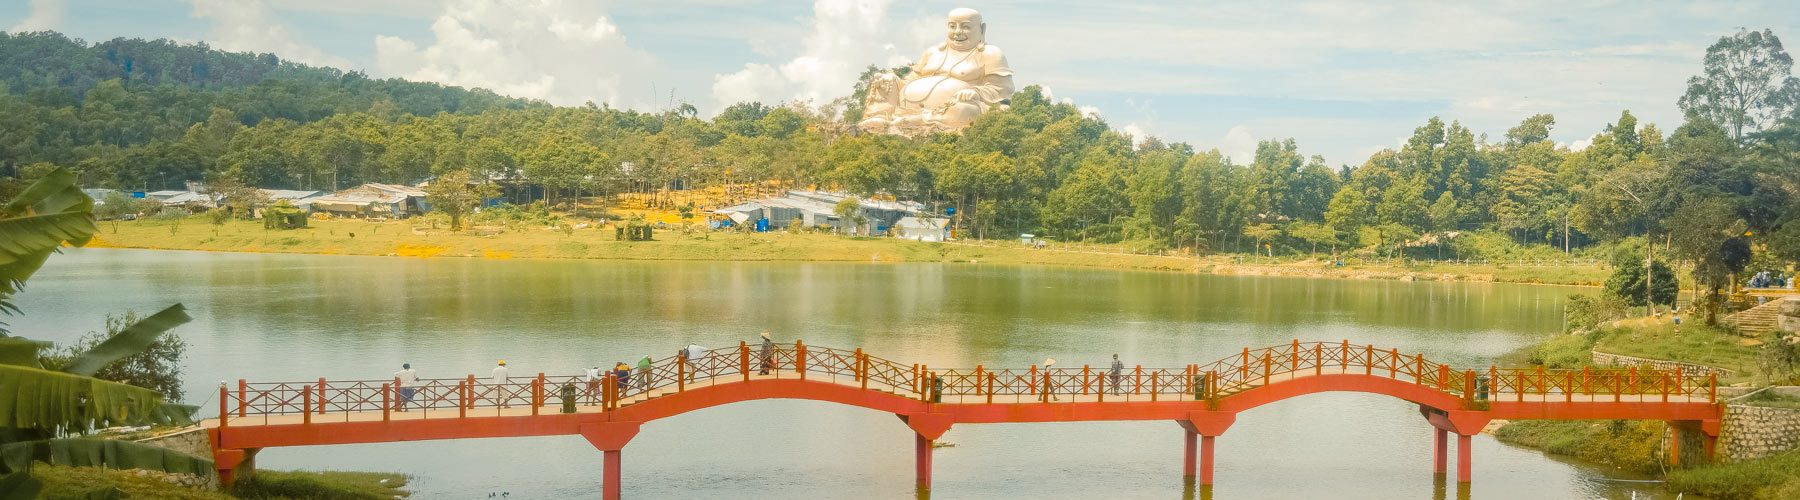 Top of Nui Cam mountain with a small red bridge and a lac facing a large sculpture of Budai, fat smiley Buddha in Vietnam. Photography by Julien Thomas.